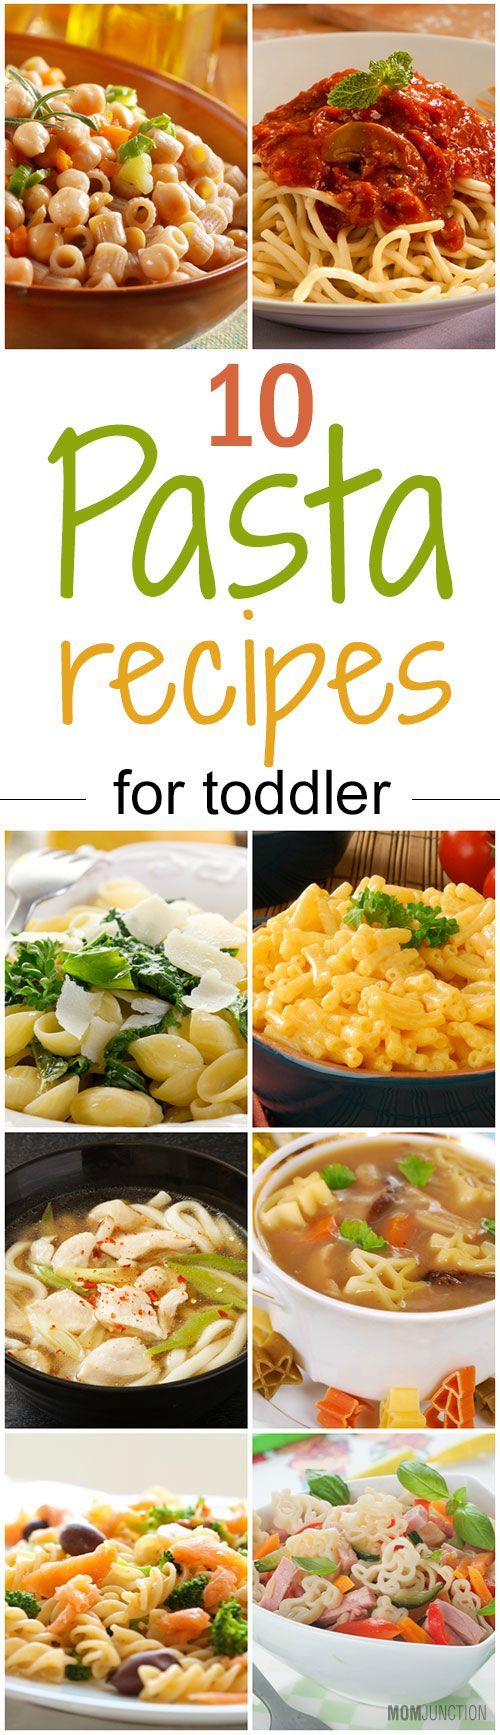 Pasta is a favorite among toddlers and young children. And why not! It tastes yummy, you'll have to agree! The best thing about this Italian delicacy is that you can fill it with healthy ingredients and turn it into a wholesome meal.So, ready to do the tango with pasta for toddlers? Let's cook some delicious and healthy pasta recipes for toddlers!